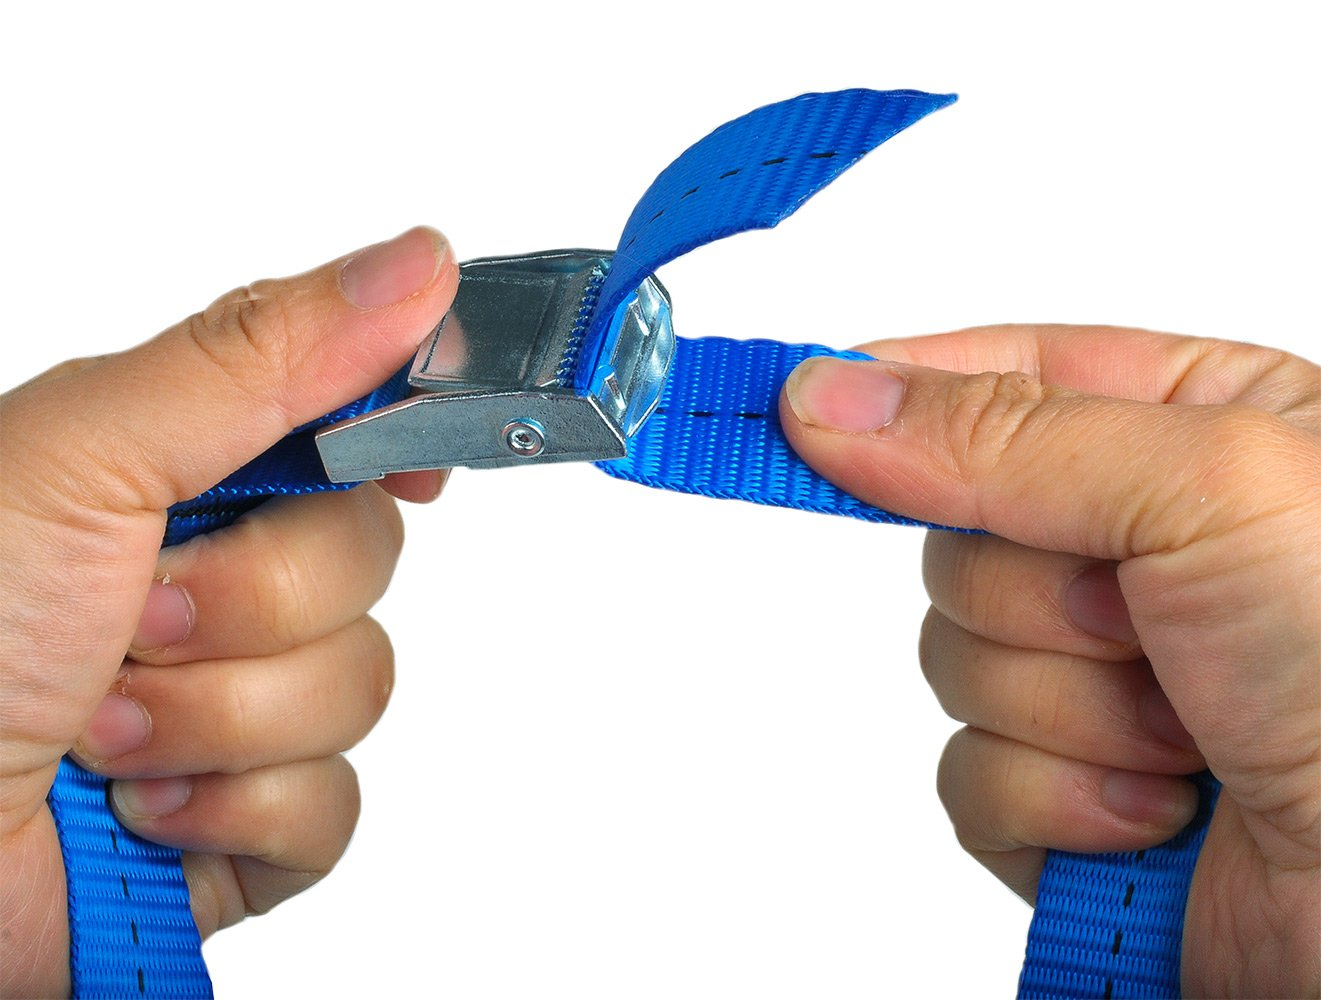 Pack of 4 Blue BlueCosto 1 x 8 Lashing Strap Tie Down Straps Rated 500 Lbs